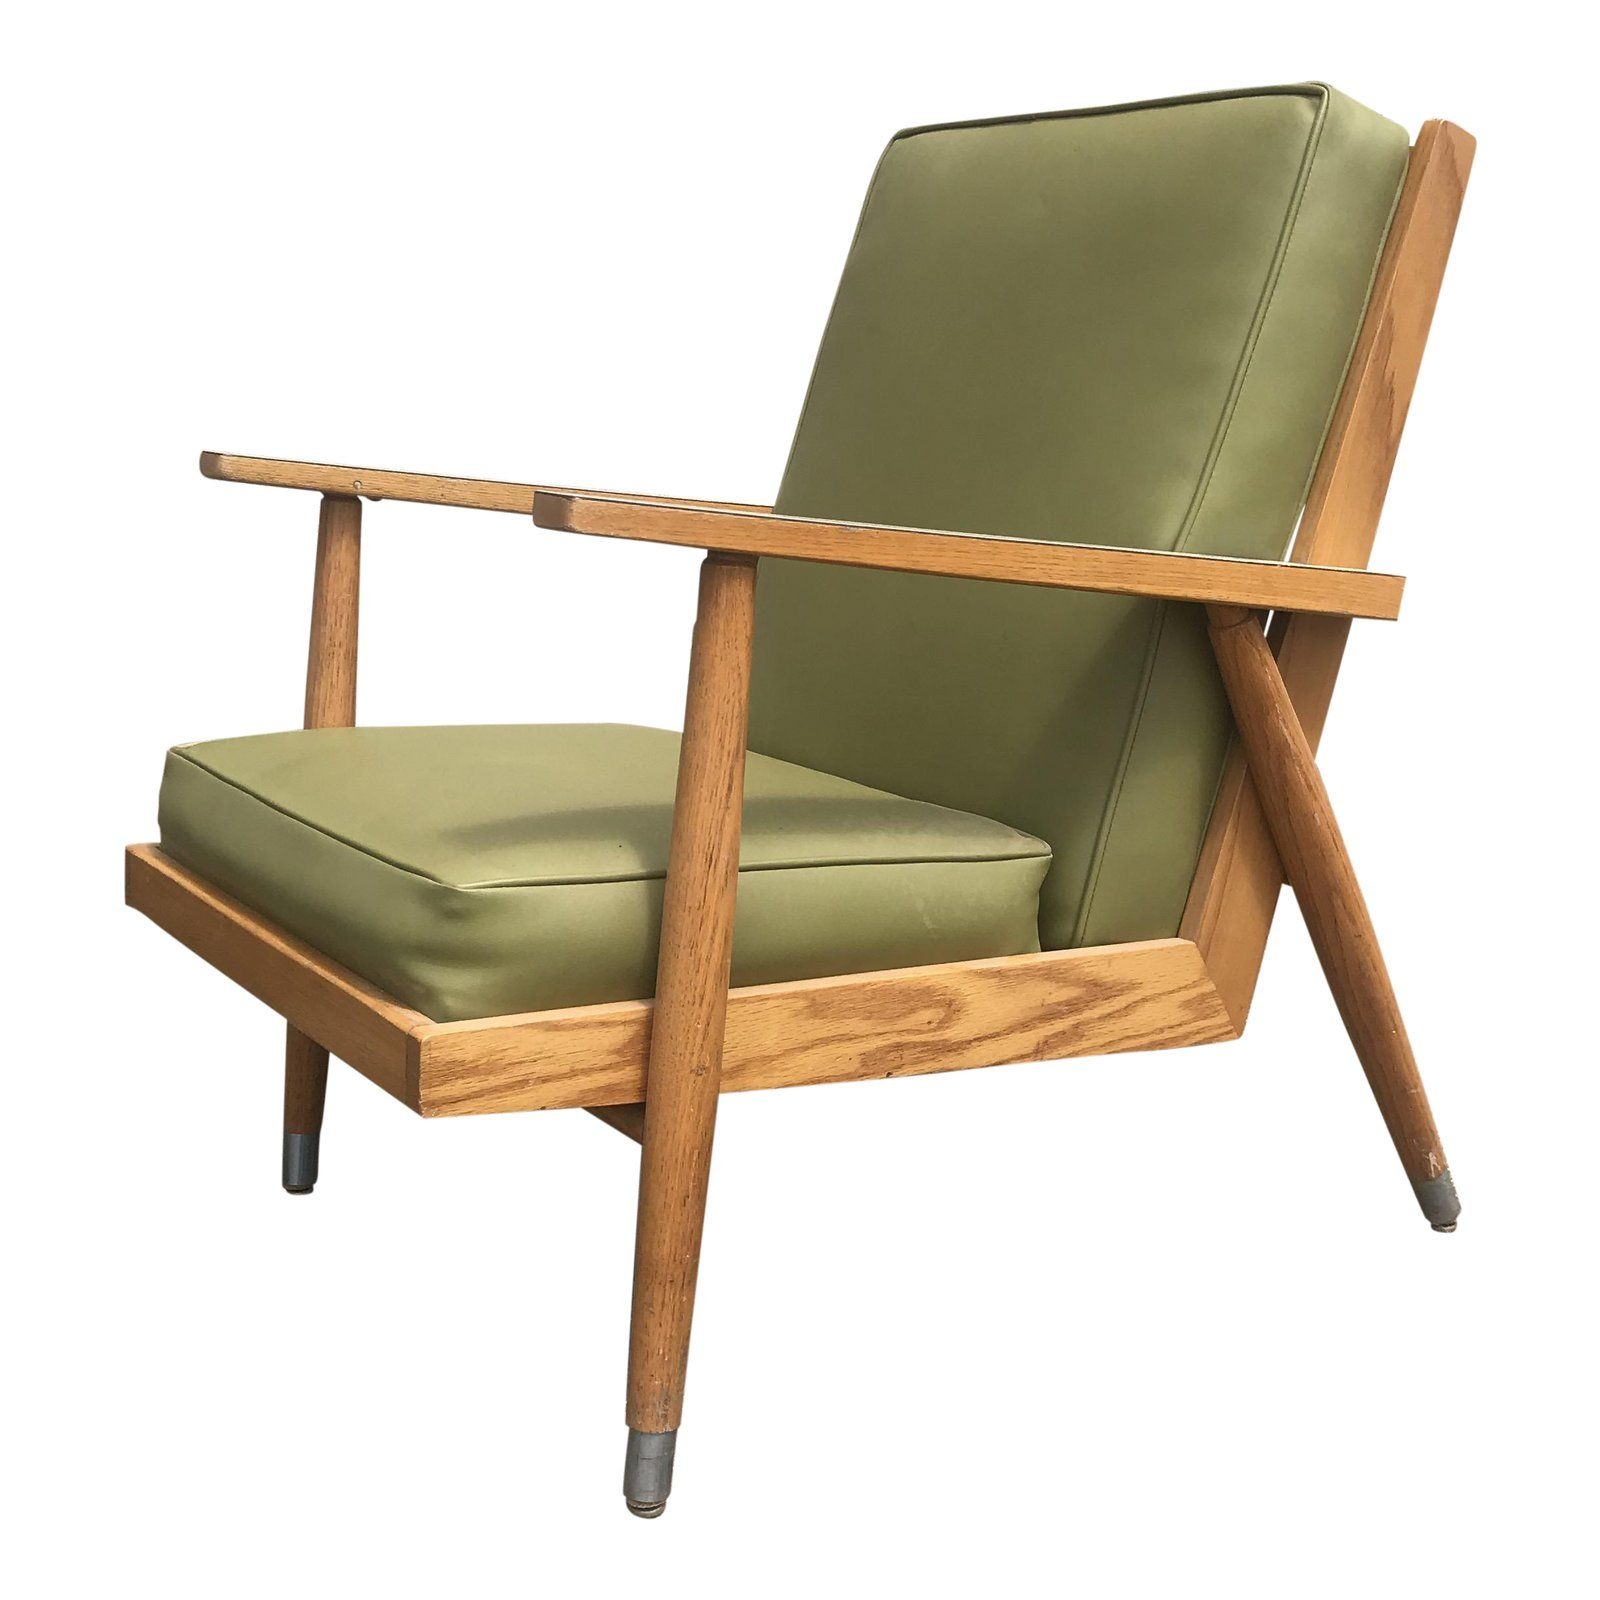 Strange The Hill Rom Company Mid Century Modern Lounge Chair For Machost Co Dining Chair Design Ideas Machostcouk